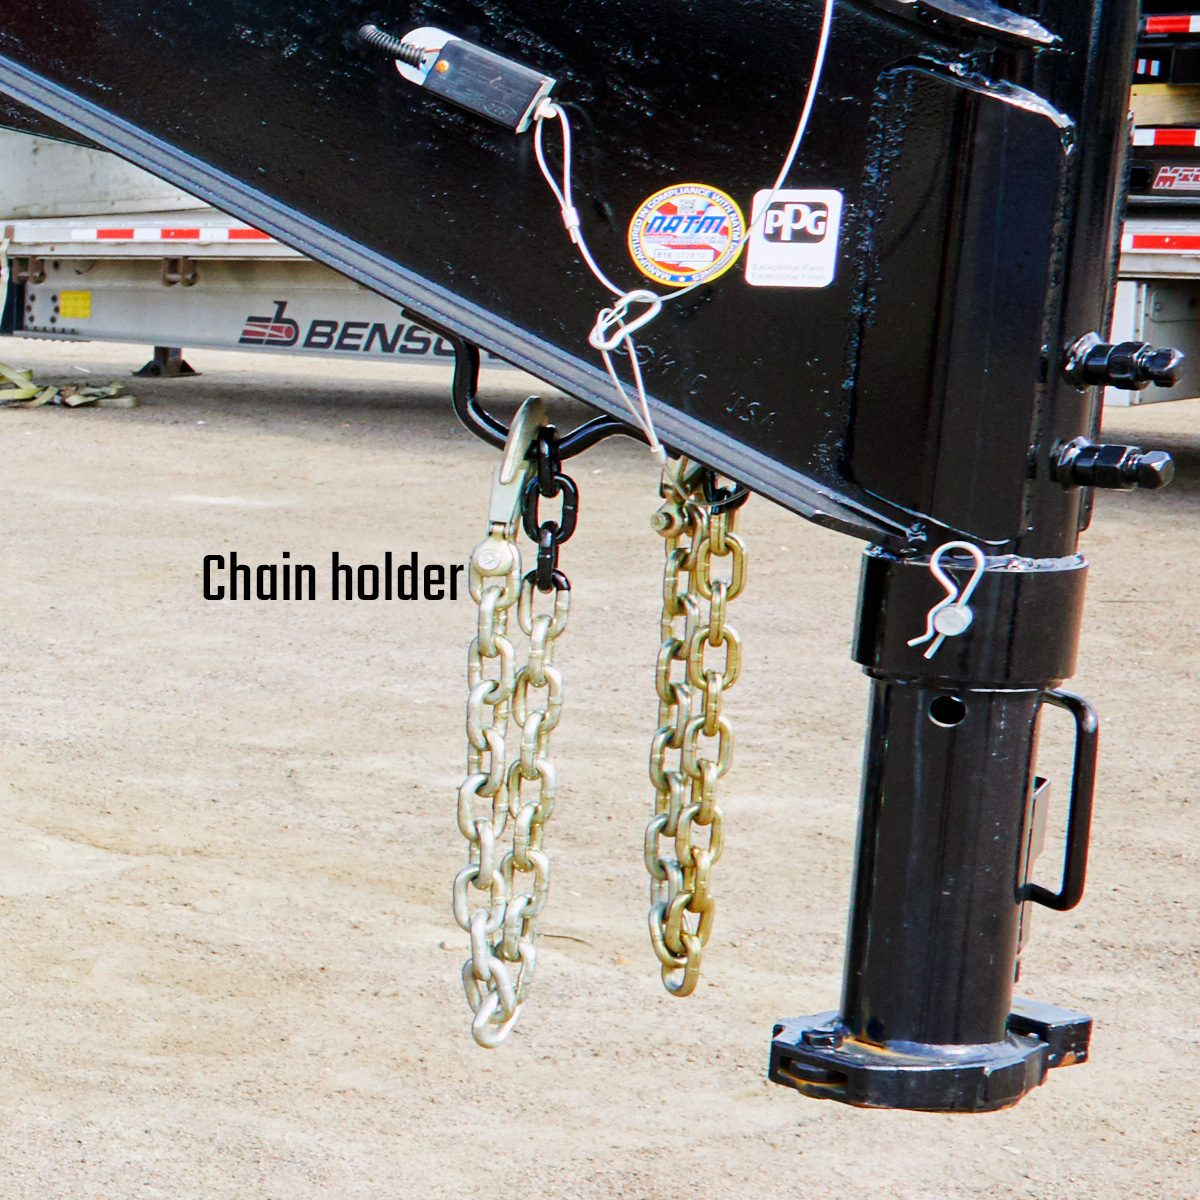 Chain holders under trailer arm | Construction Pro Tips